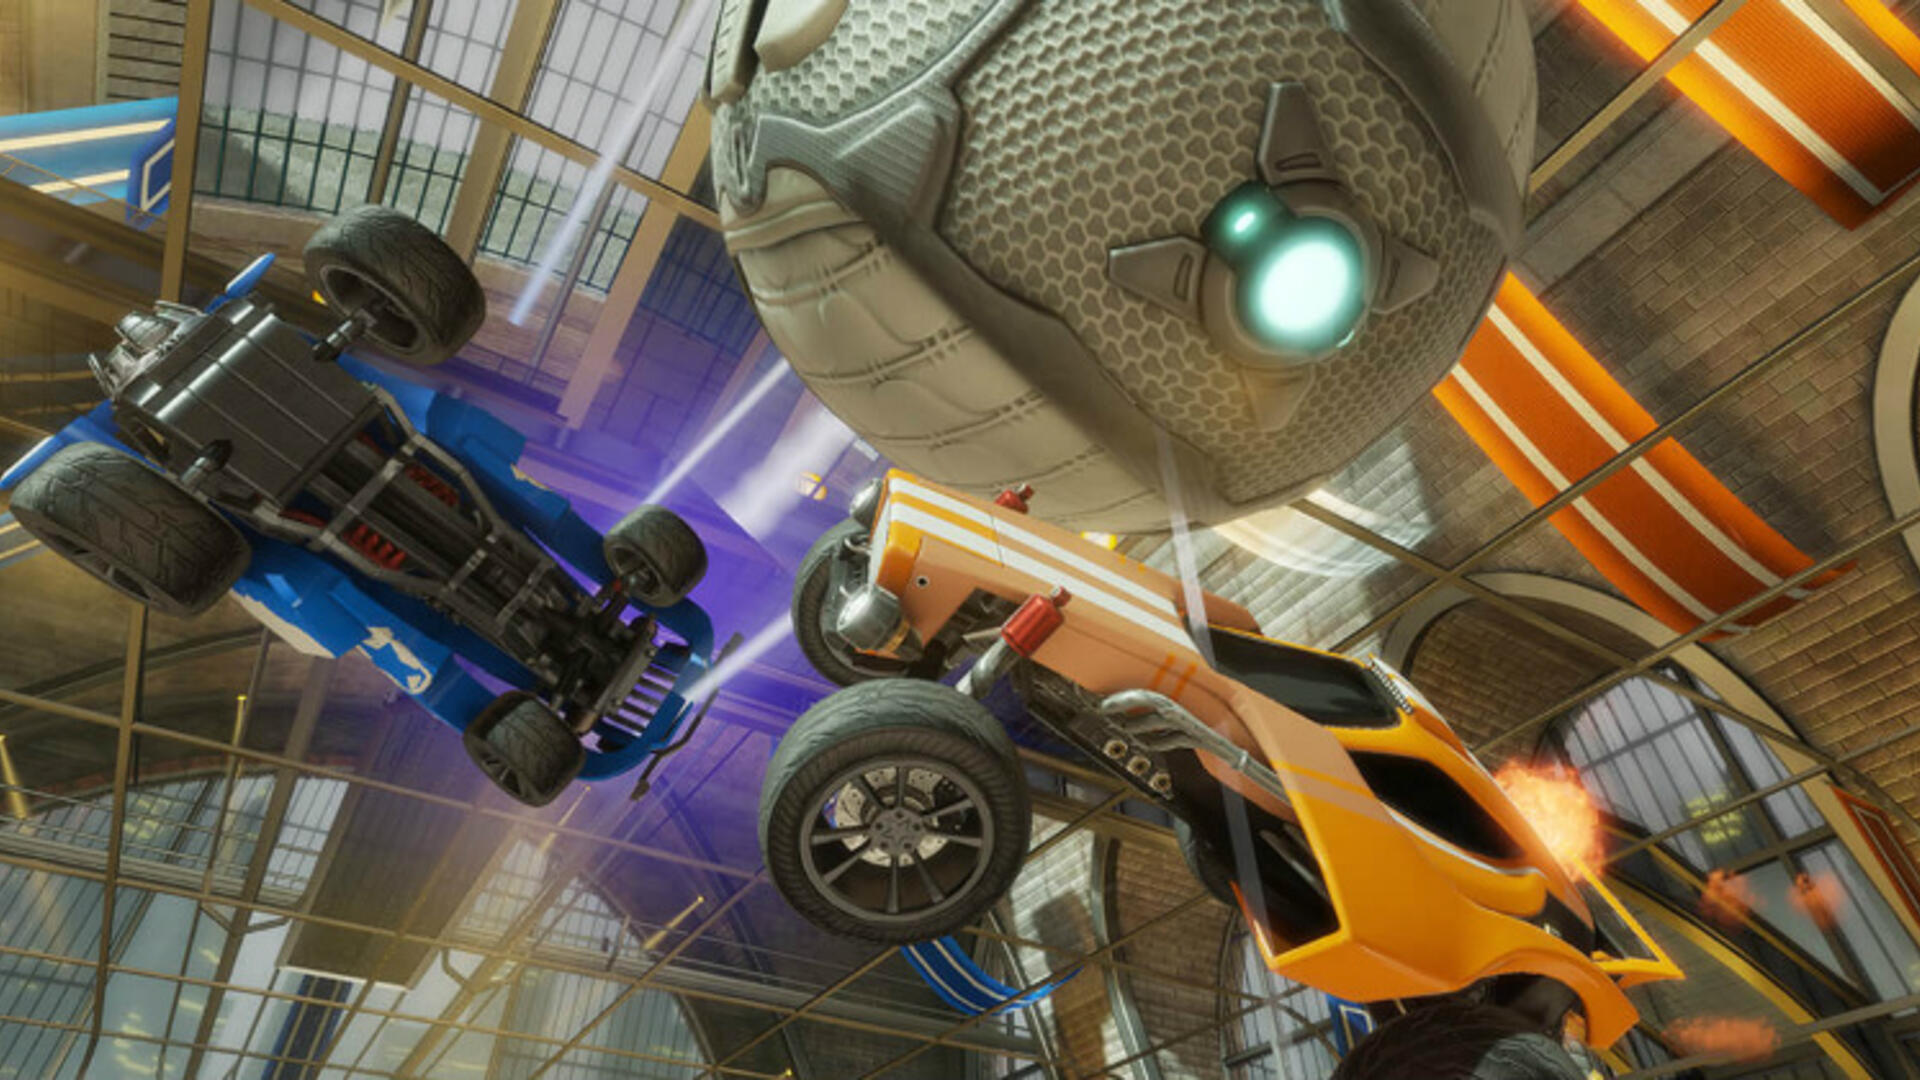 Tuesday Stream: Mike Joins the Rocket League [Done!]